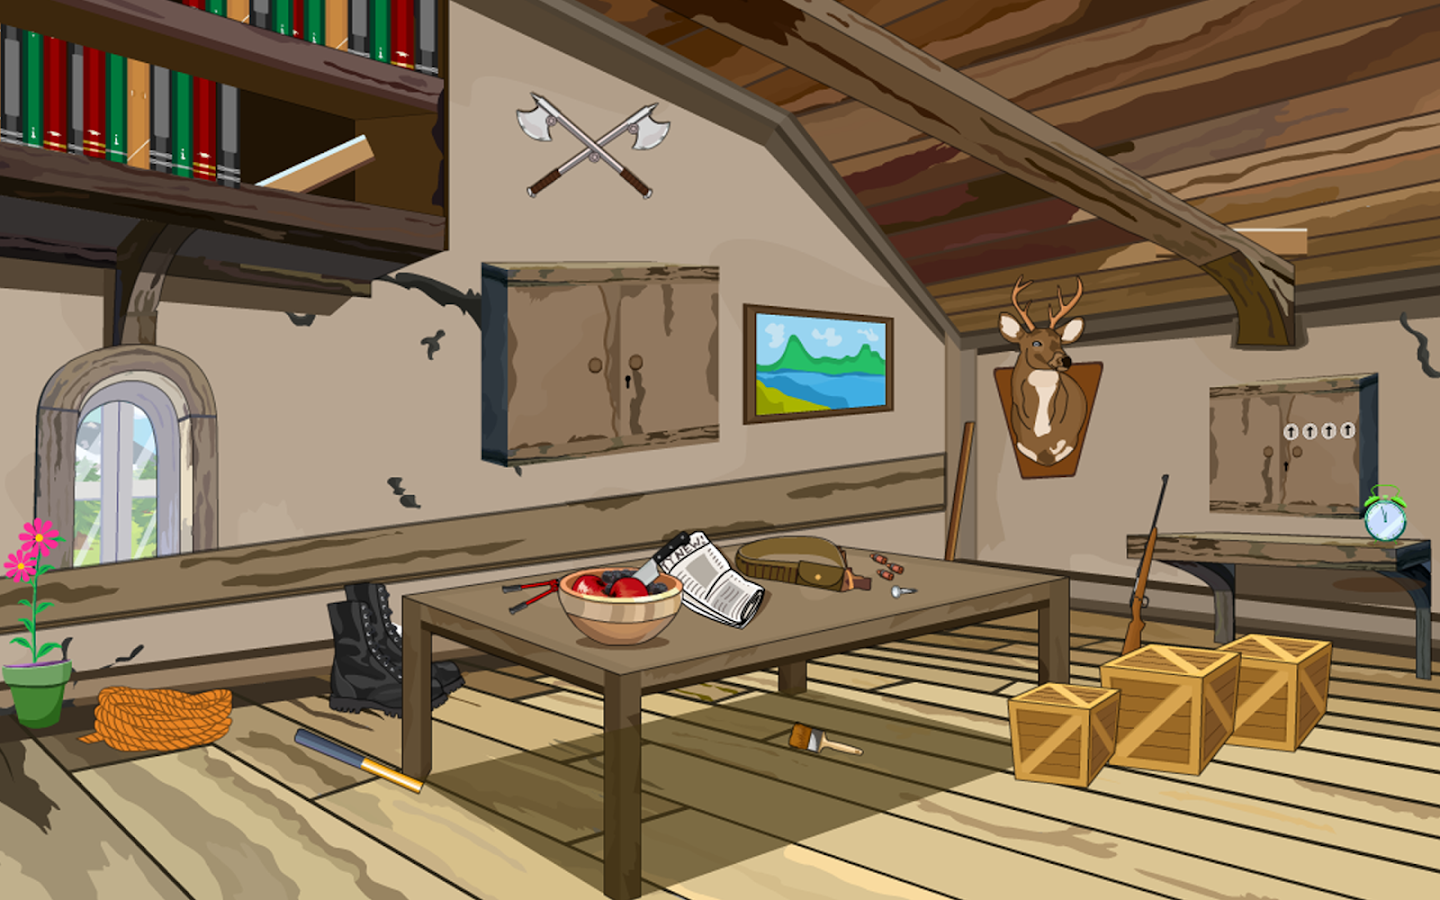 Escape Puzzle Dining Room Android Apps on Google Play : wQN9GyZb6rLWsNuSVF396H3eEl7Gc8JKU2IzWe6B0AFNTCMZTKd7L7pxy 2jHdGAh900 from play.google.com size 1440 x 900 png 906kB